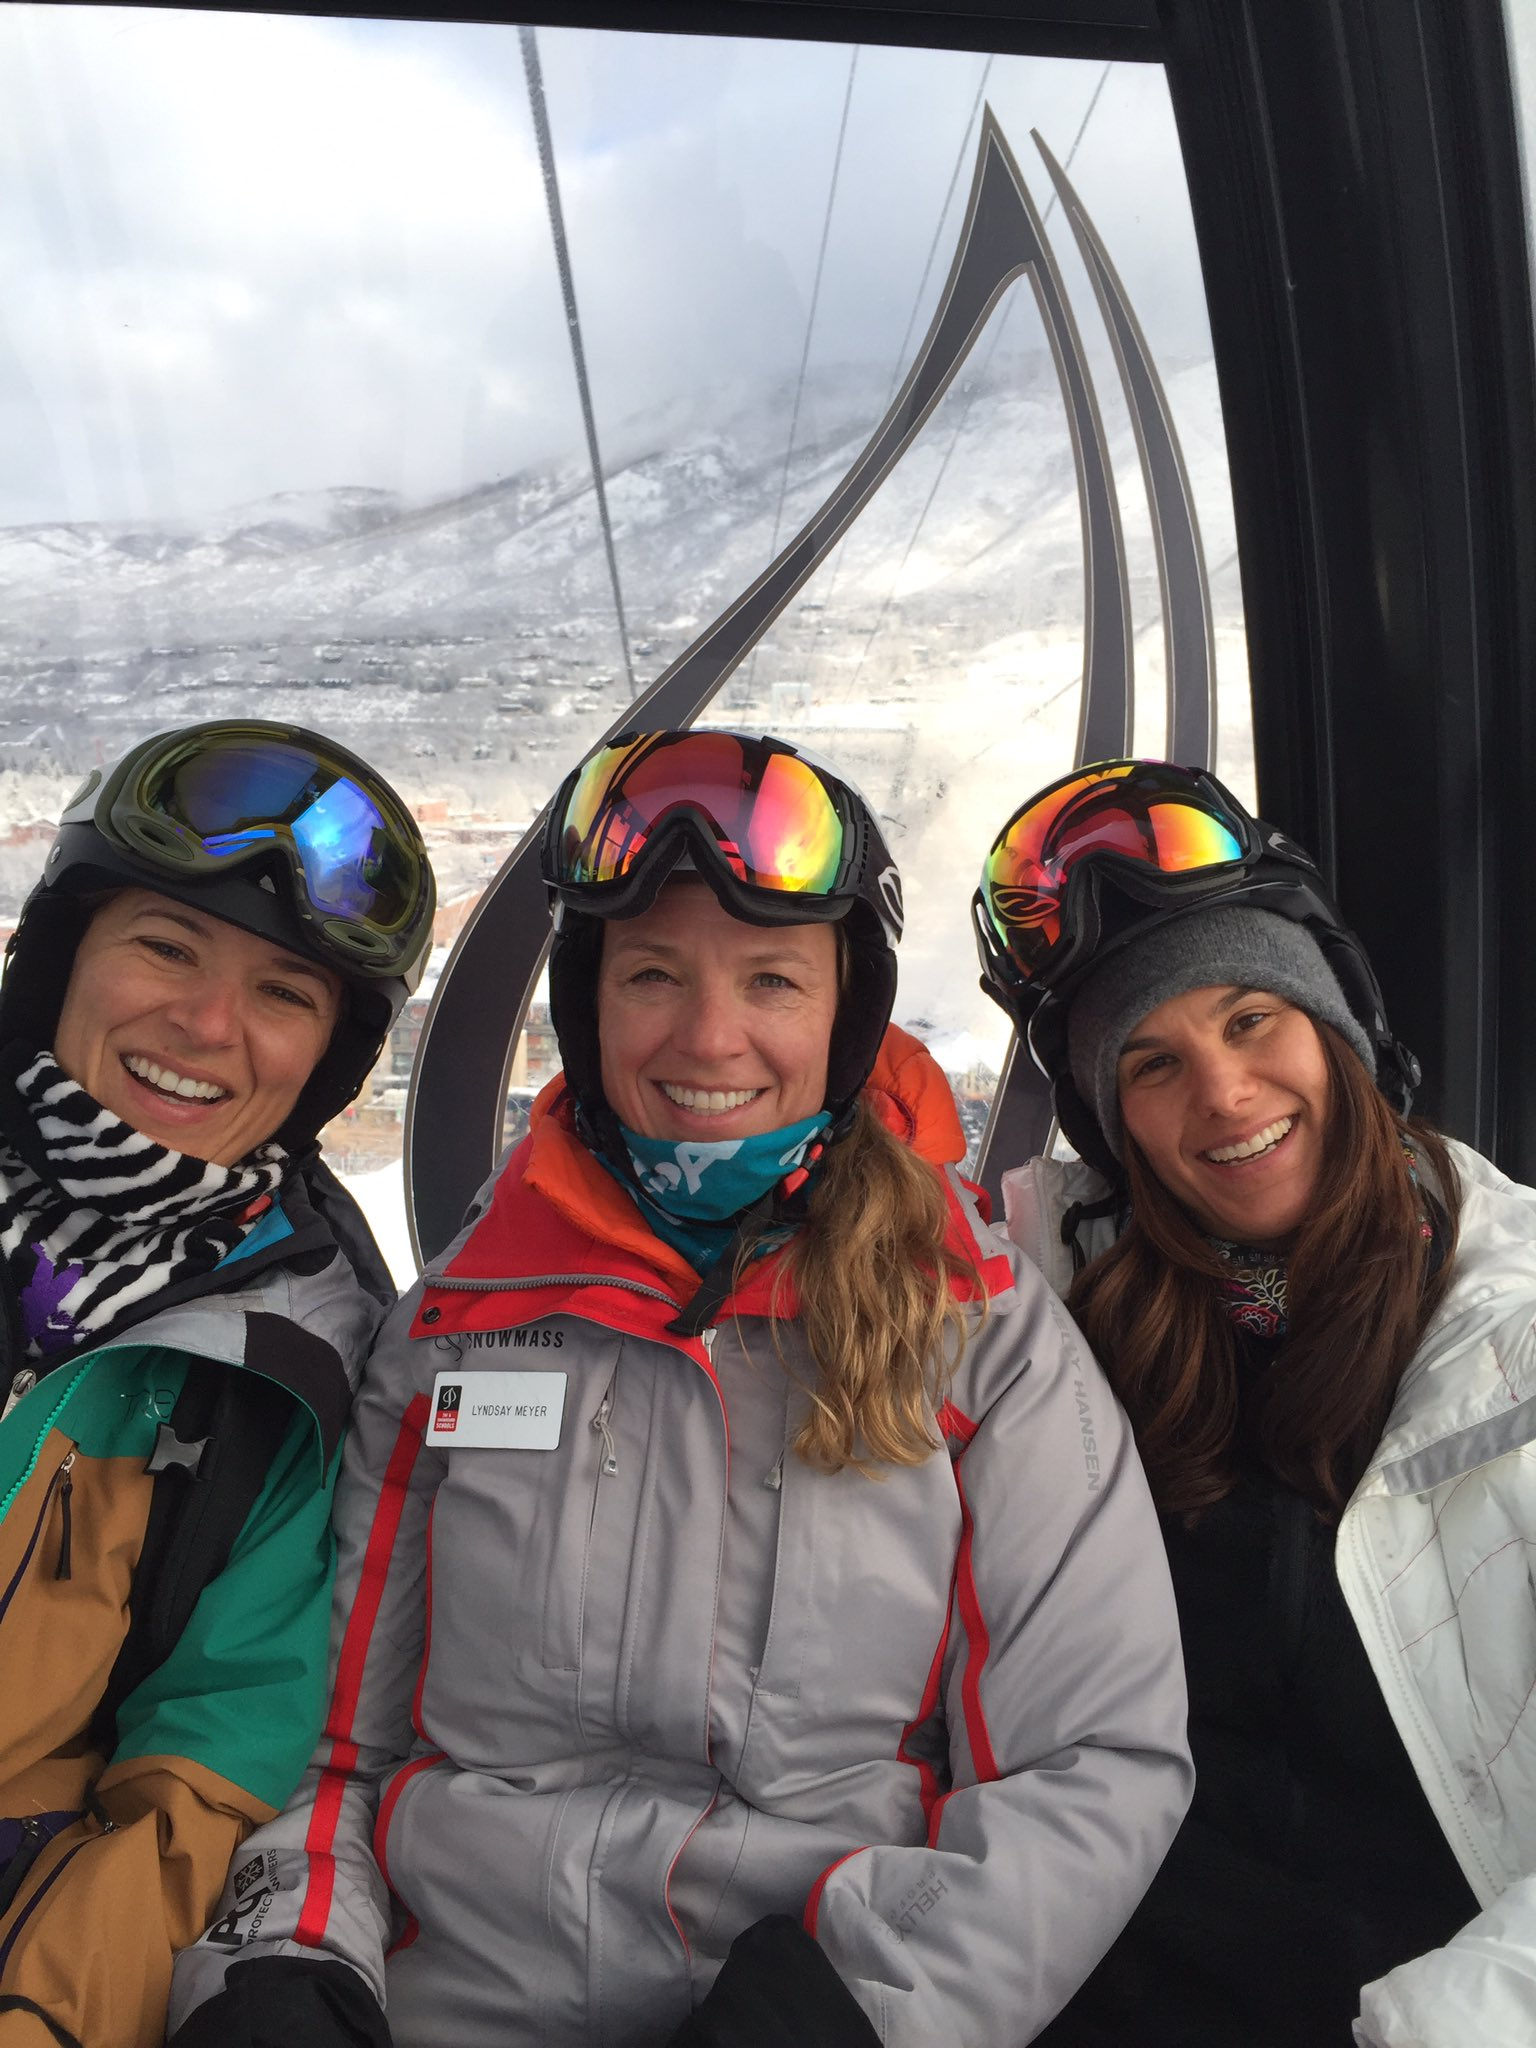 The ladies are all smiles, because it's a powder day @AspenSnowmass @lyndski @AYogaSociety @mmuric https://t.co/a02xOMepge